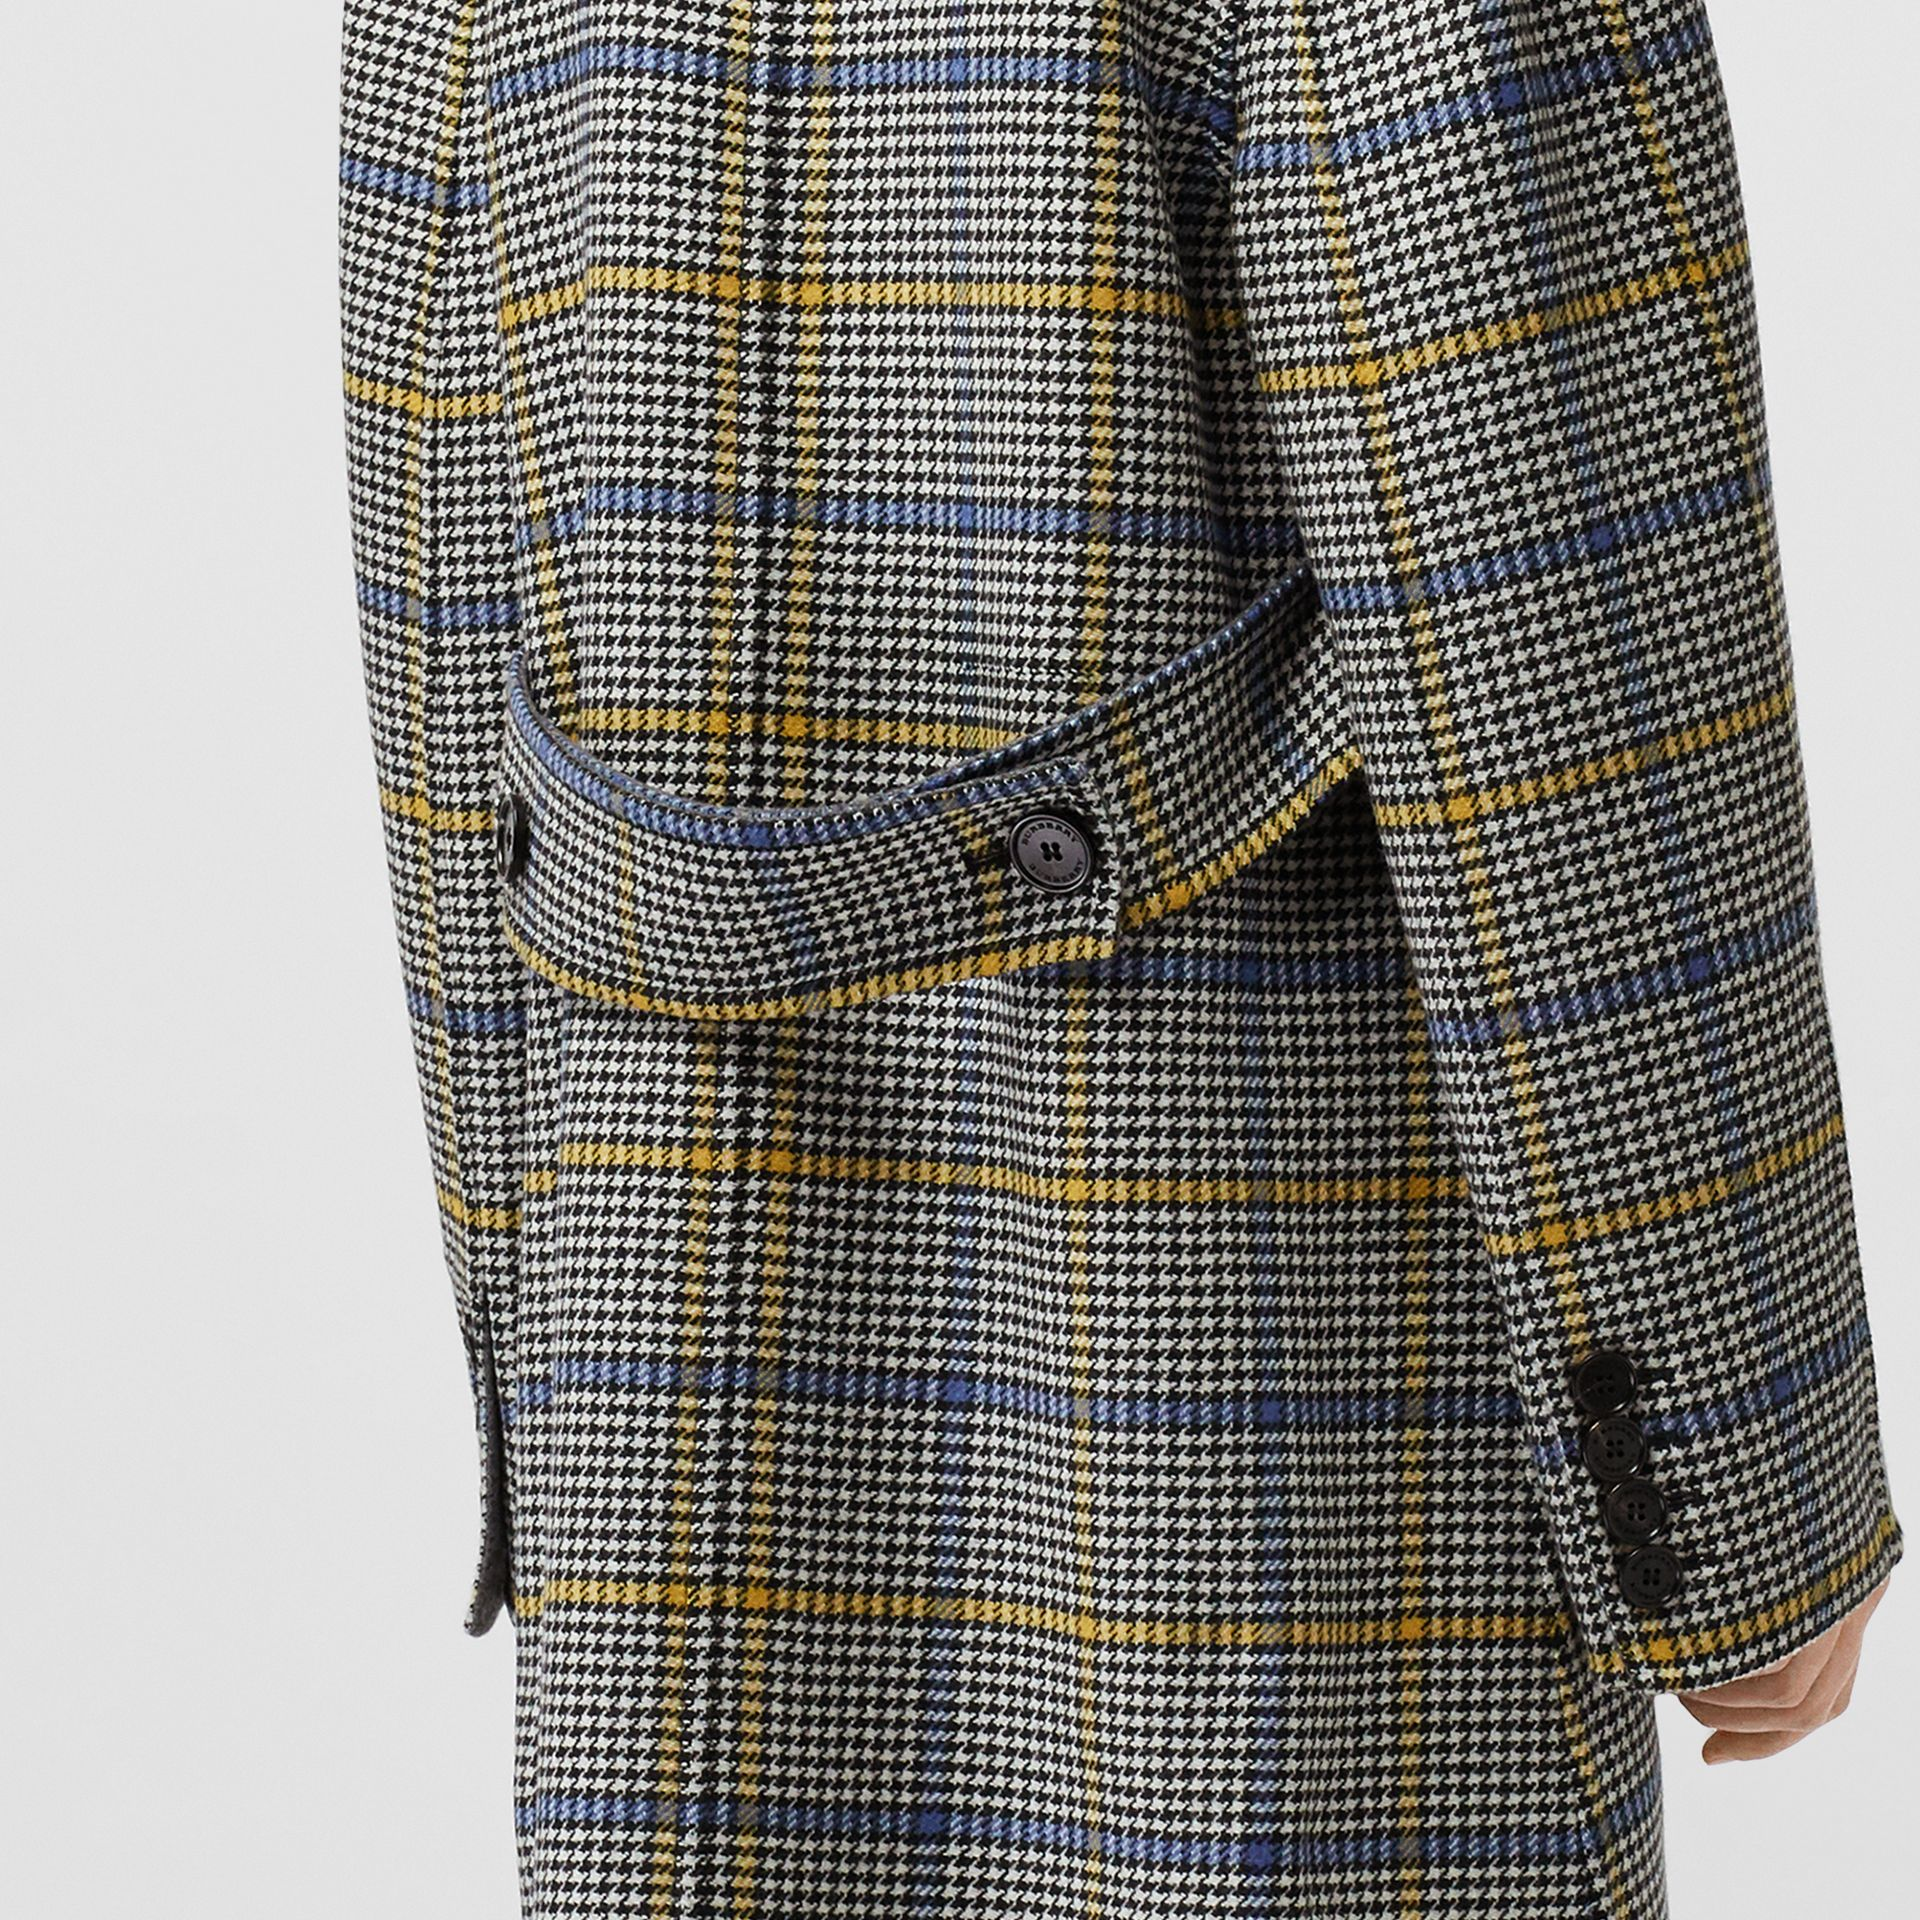 Double-faced Check Wool Cashmere Coat in Parchment - Women | Burberry - gallery image 4